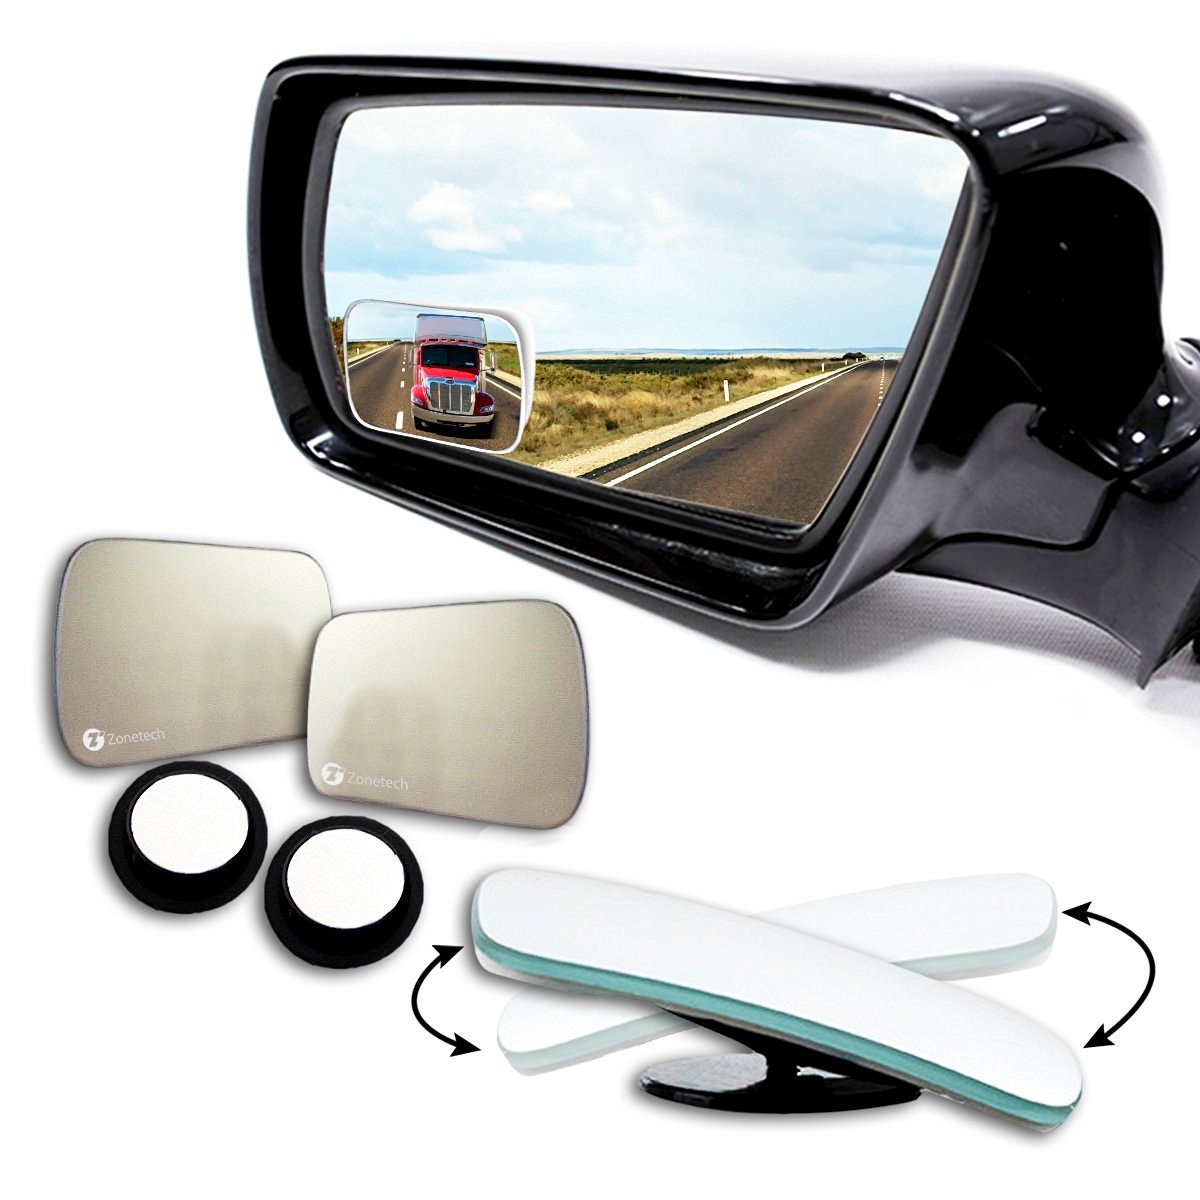 Zone Tech Blind Spot Adjustable Square Mirrors - 2-Pack Square Blind Spot Mirror Adjustable Stick-On Exterior Side Mirror for All Cars Motorcycles Trucks Snowmobiles - image 5 of 5